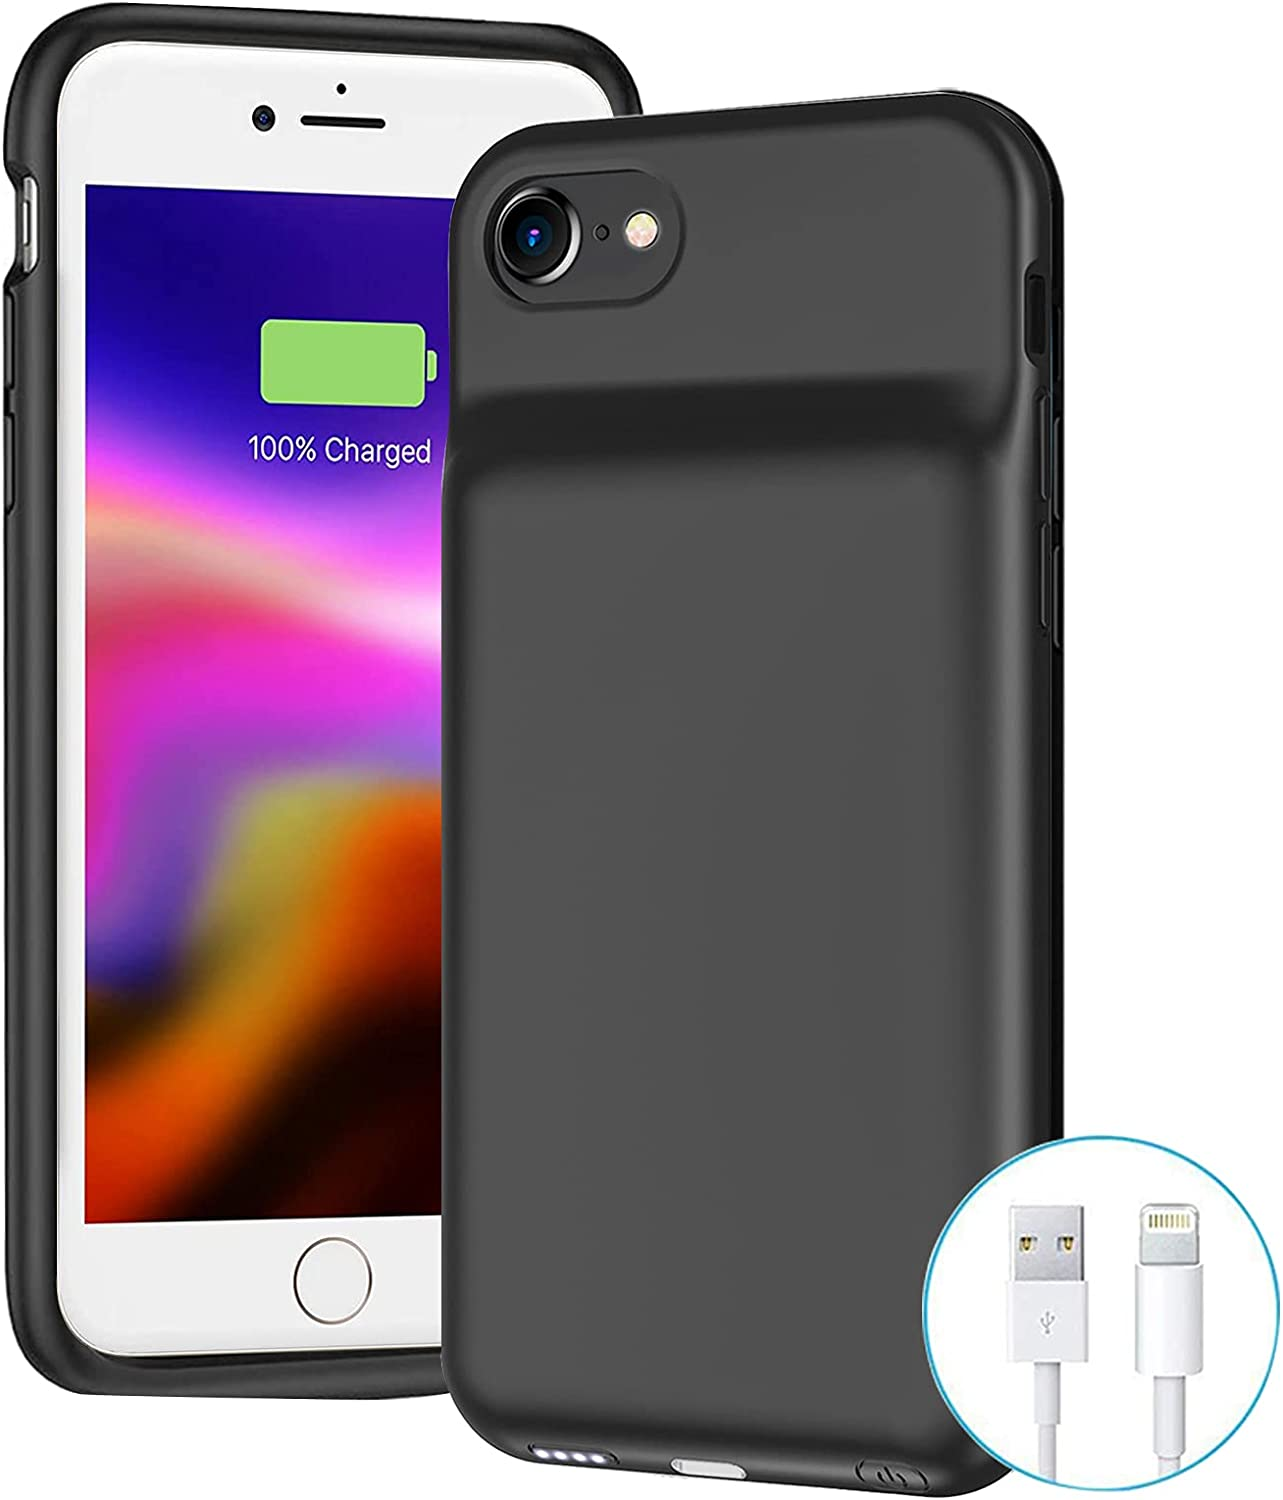 Battery Case for iPhone 8/7/6s/6/SE 2020(2nd Generation),6500mAh Portable Charger Case Rechargeable Battery Pack Charging Case Compatible with iPhone SE 2020(2nd Generation)/8/7/6s/6 (4.7 inch)-Black